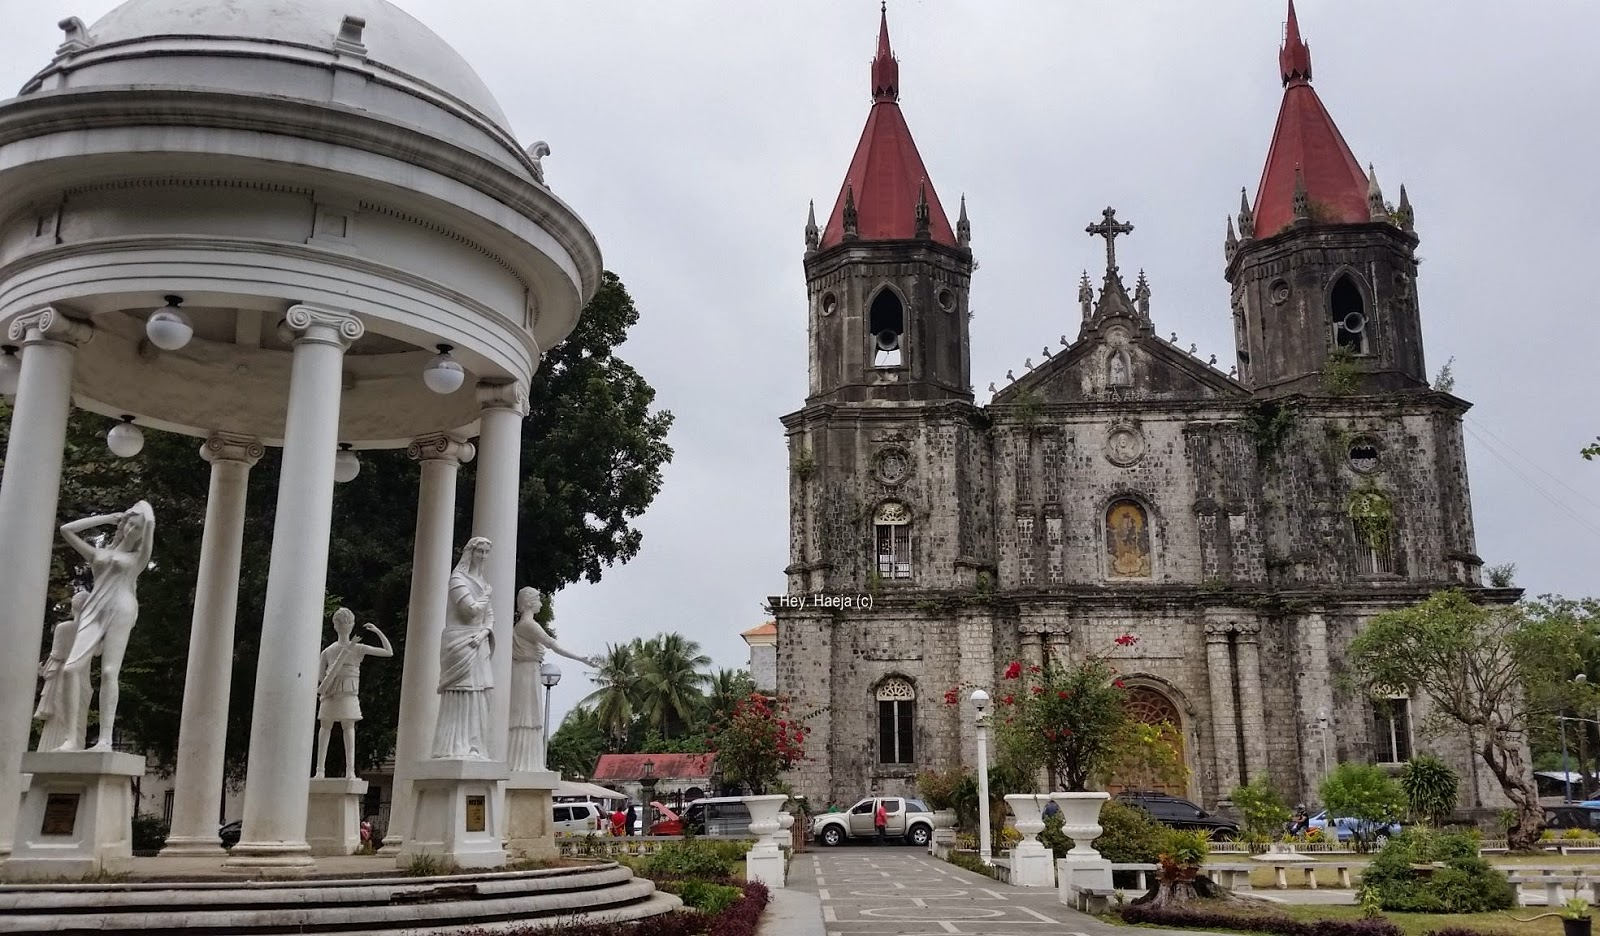 St. Anne's Church, Iloilo | (c) Hey, Haeja